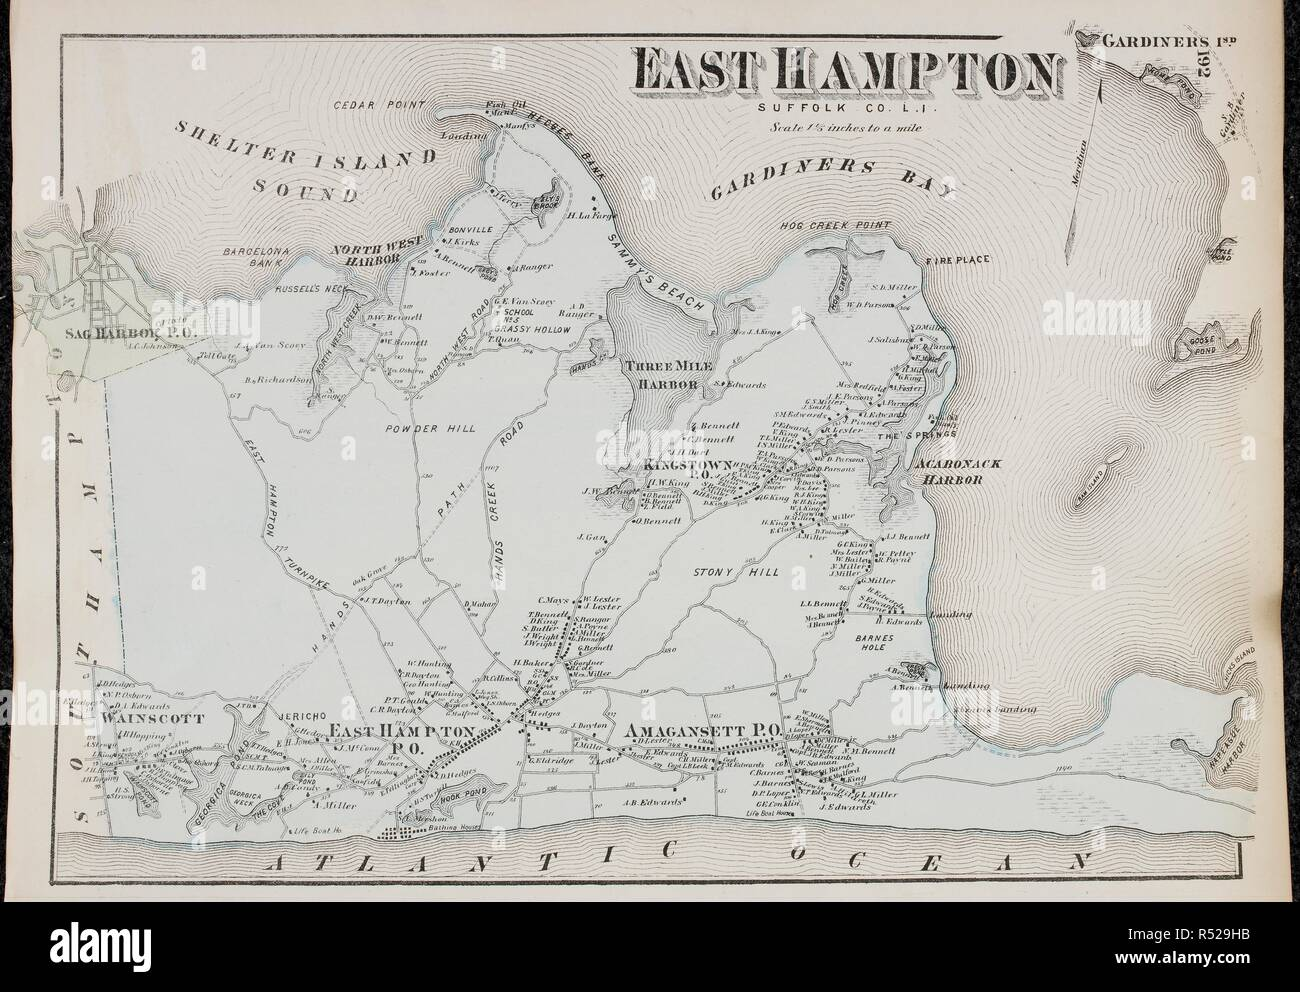 Map Of East Hampton On Long Island New York In The United States - Long-island-on-us-map